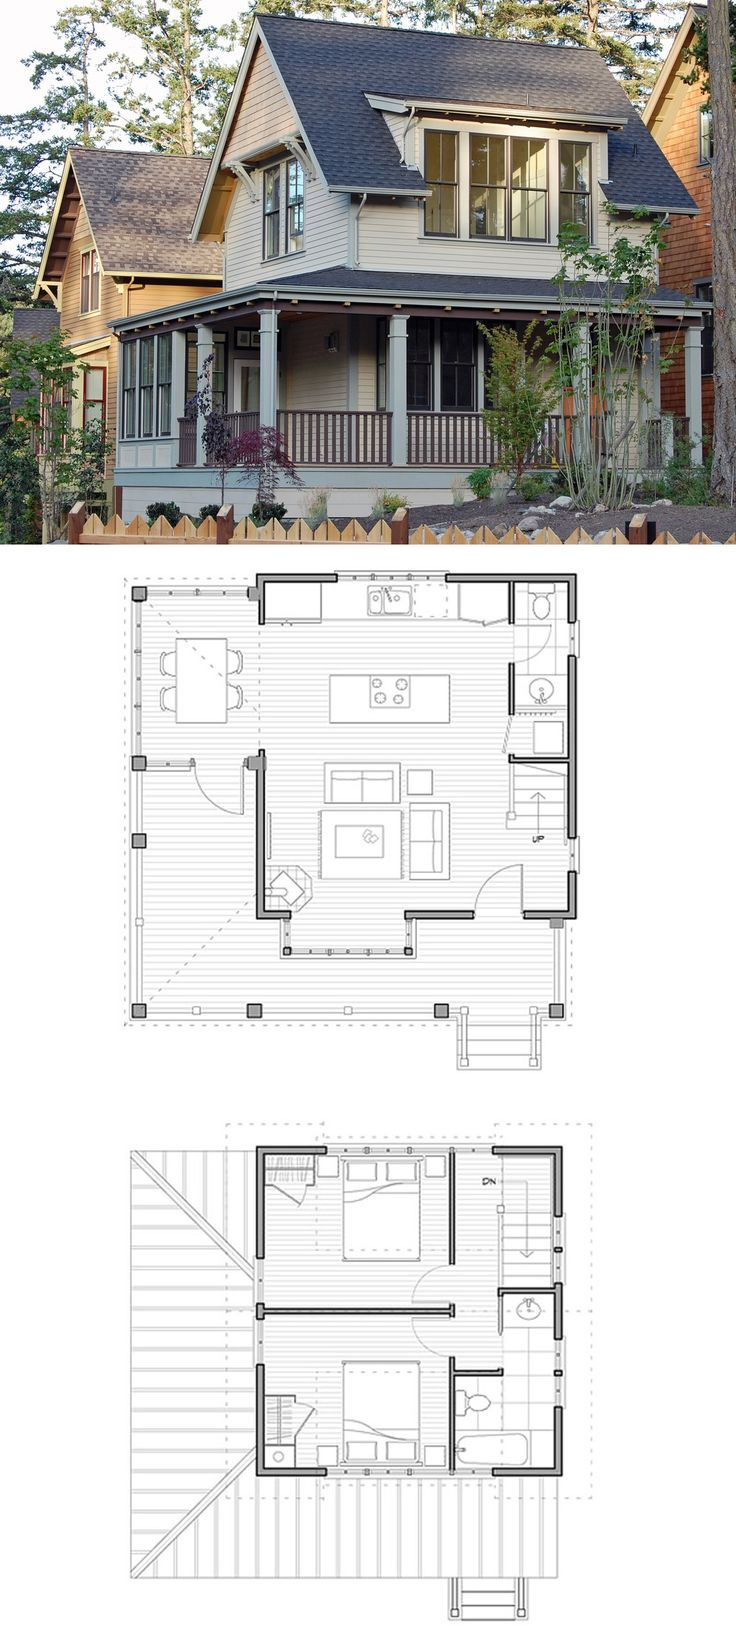 204 best house plans and exteriors images on pinterest house 204 best house plans and exteriors images on pinterest house floor plans dream house plans and small house plans